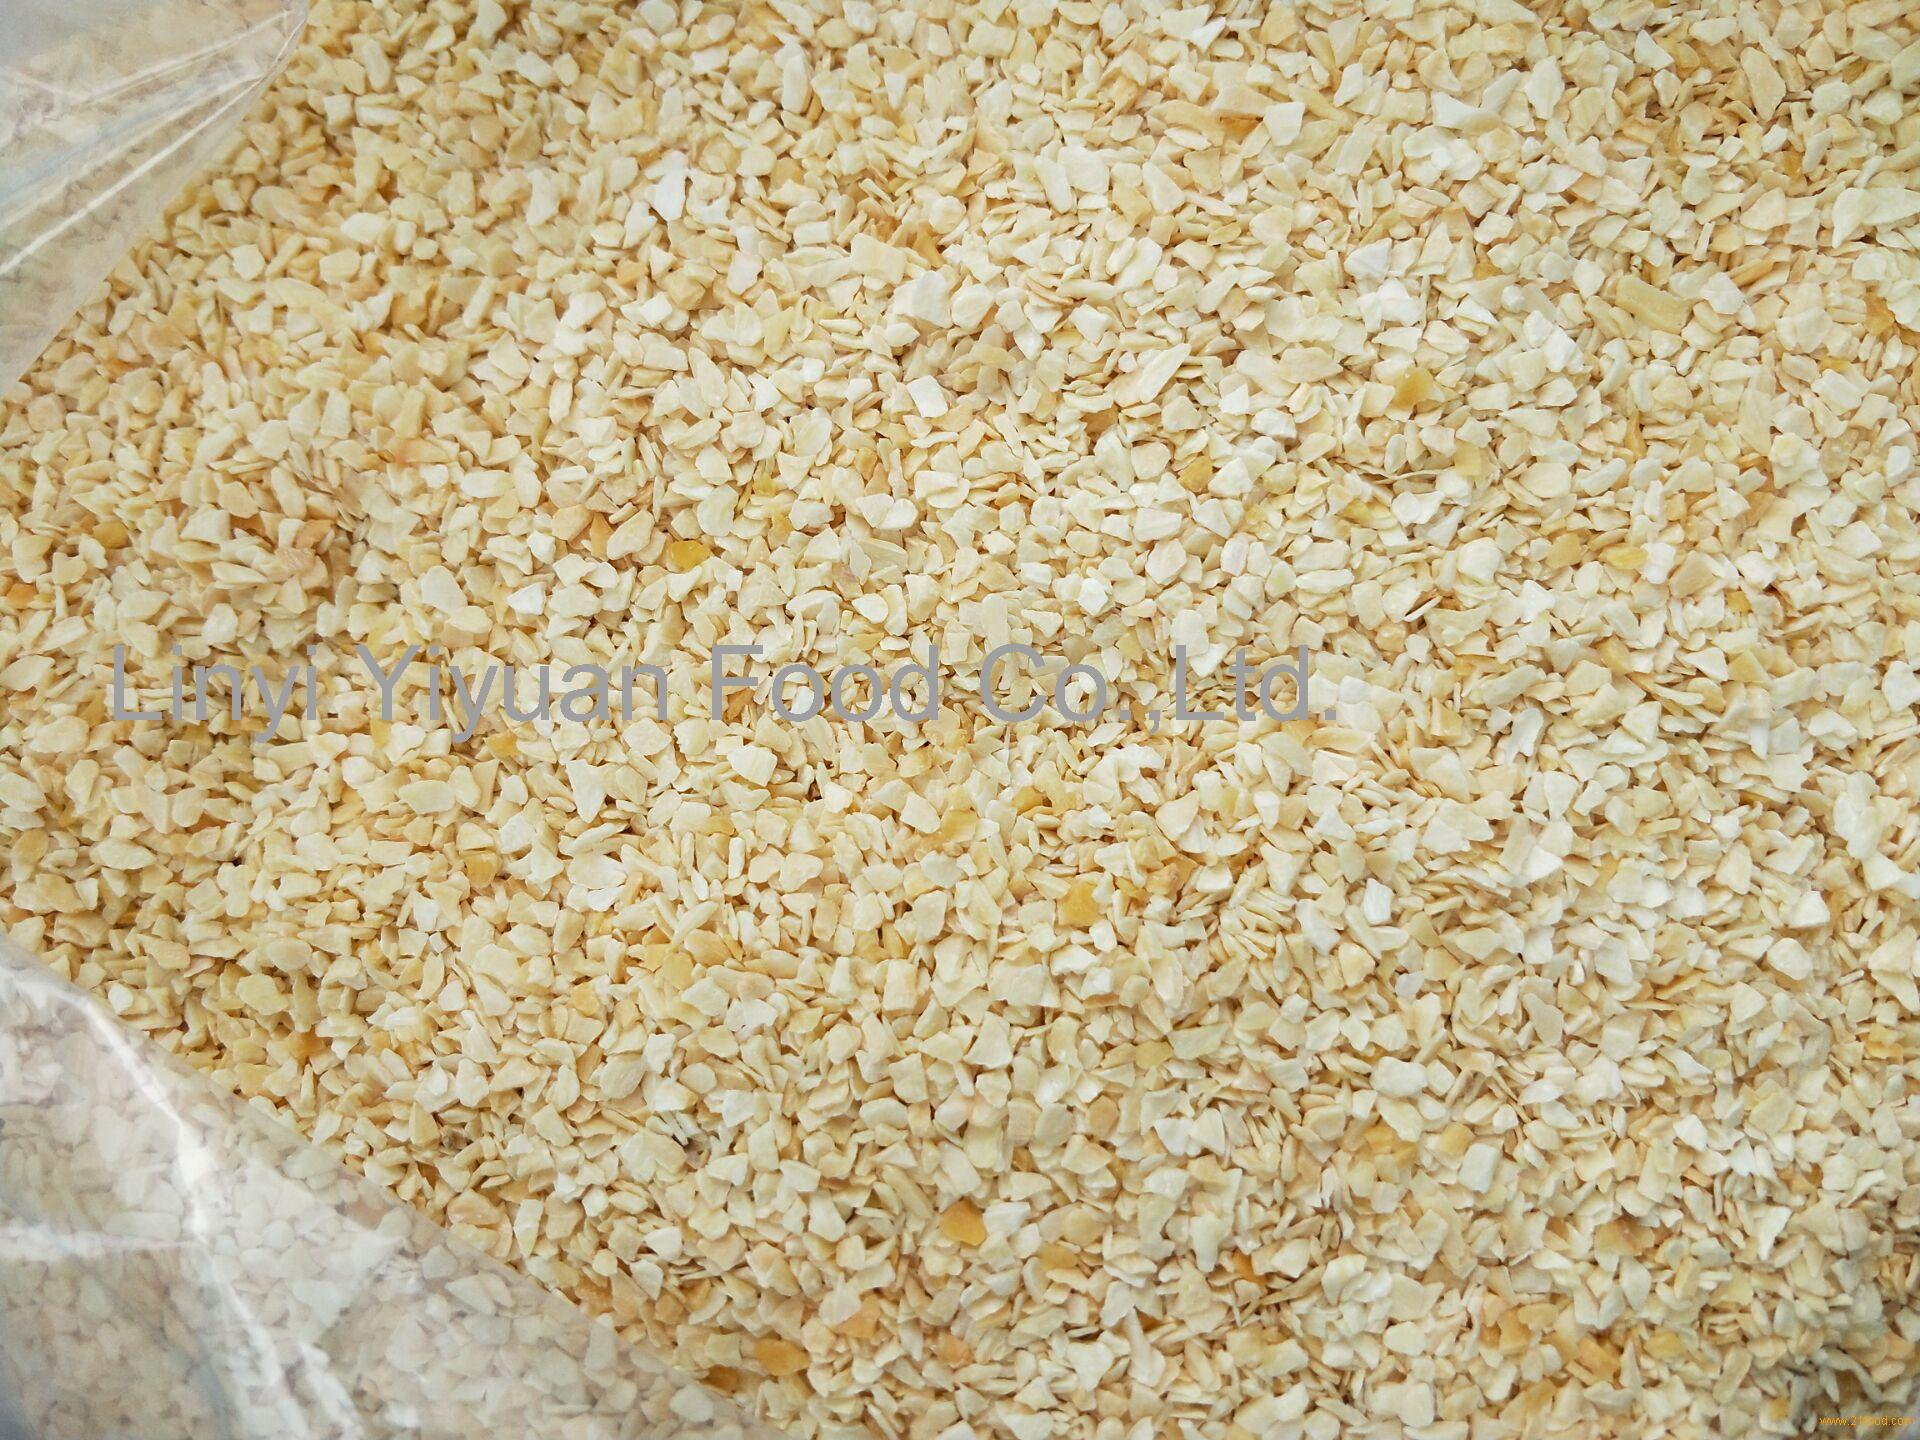 garlic granule without root material